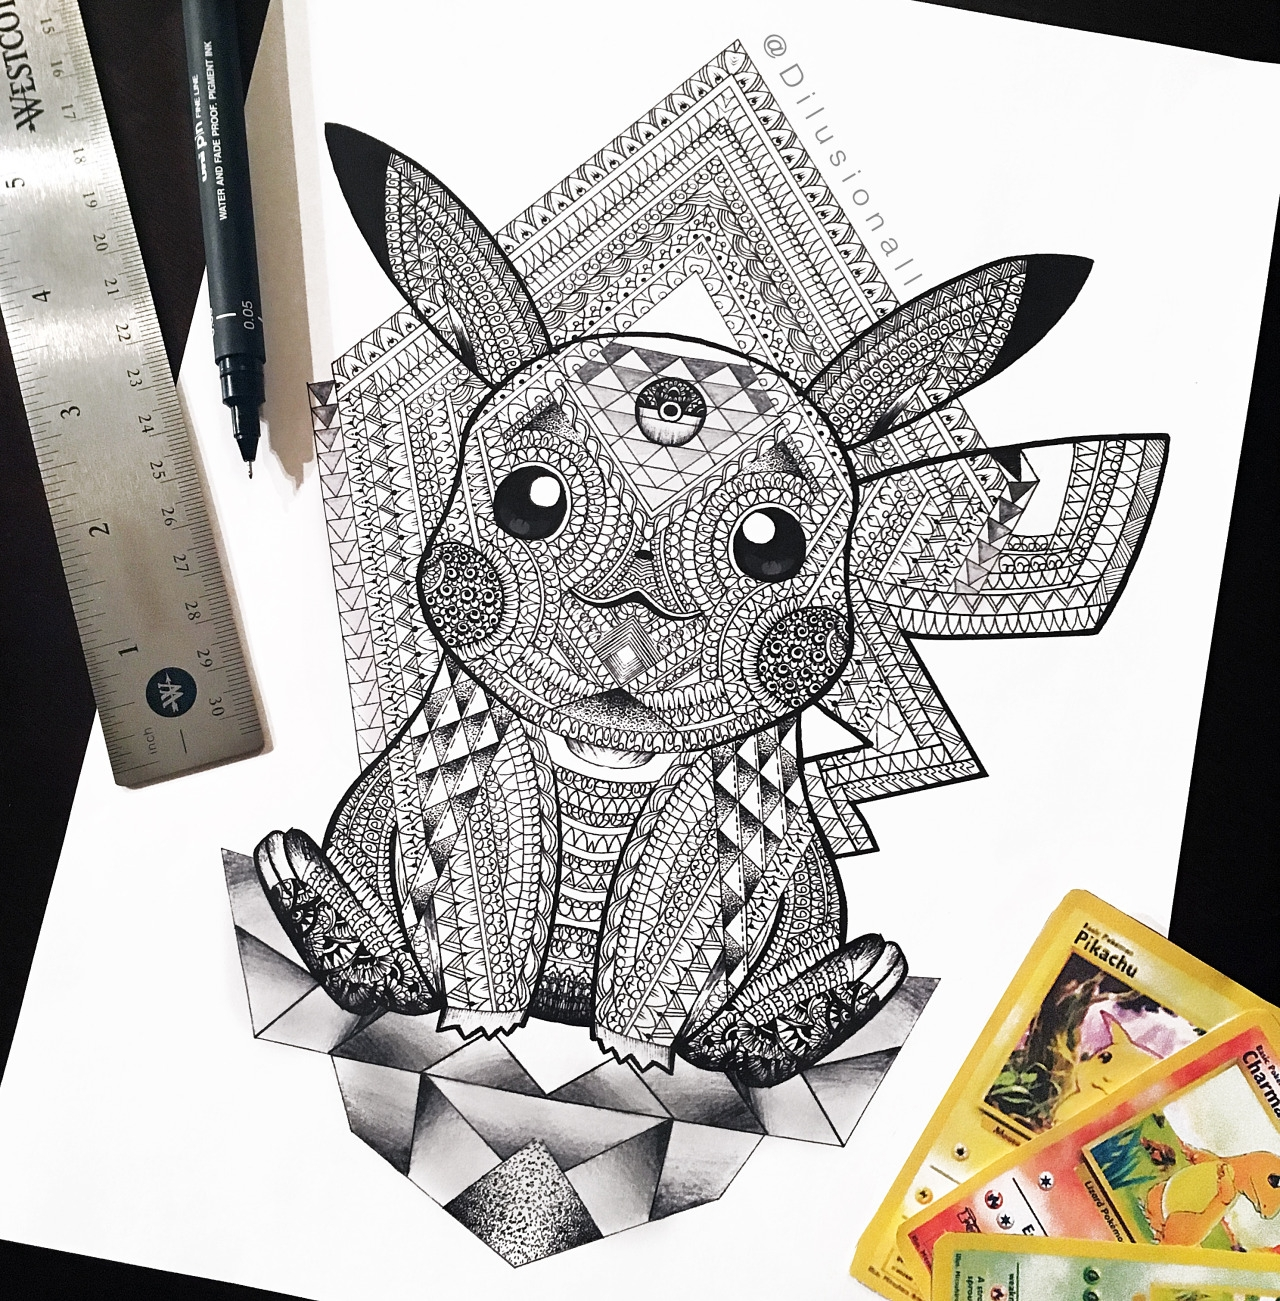 05-Enlightened-Pikachu-Dilrani-Kauris-Symmetry-and-Style-in-Mandala-and-Mehndi-Drawings-www-designstack-co